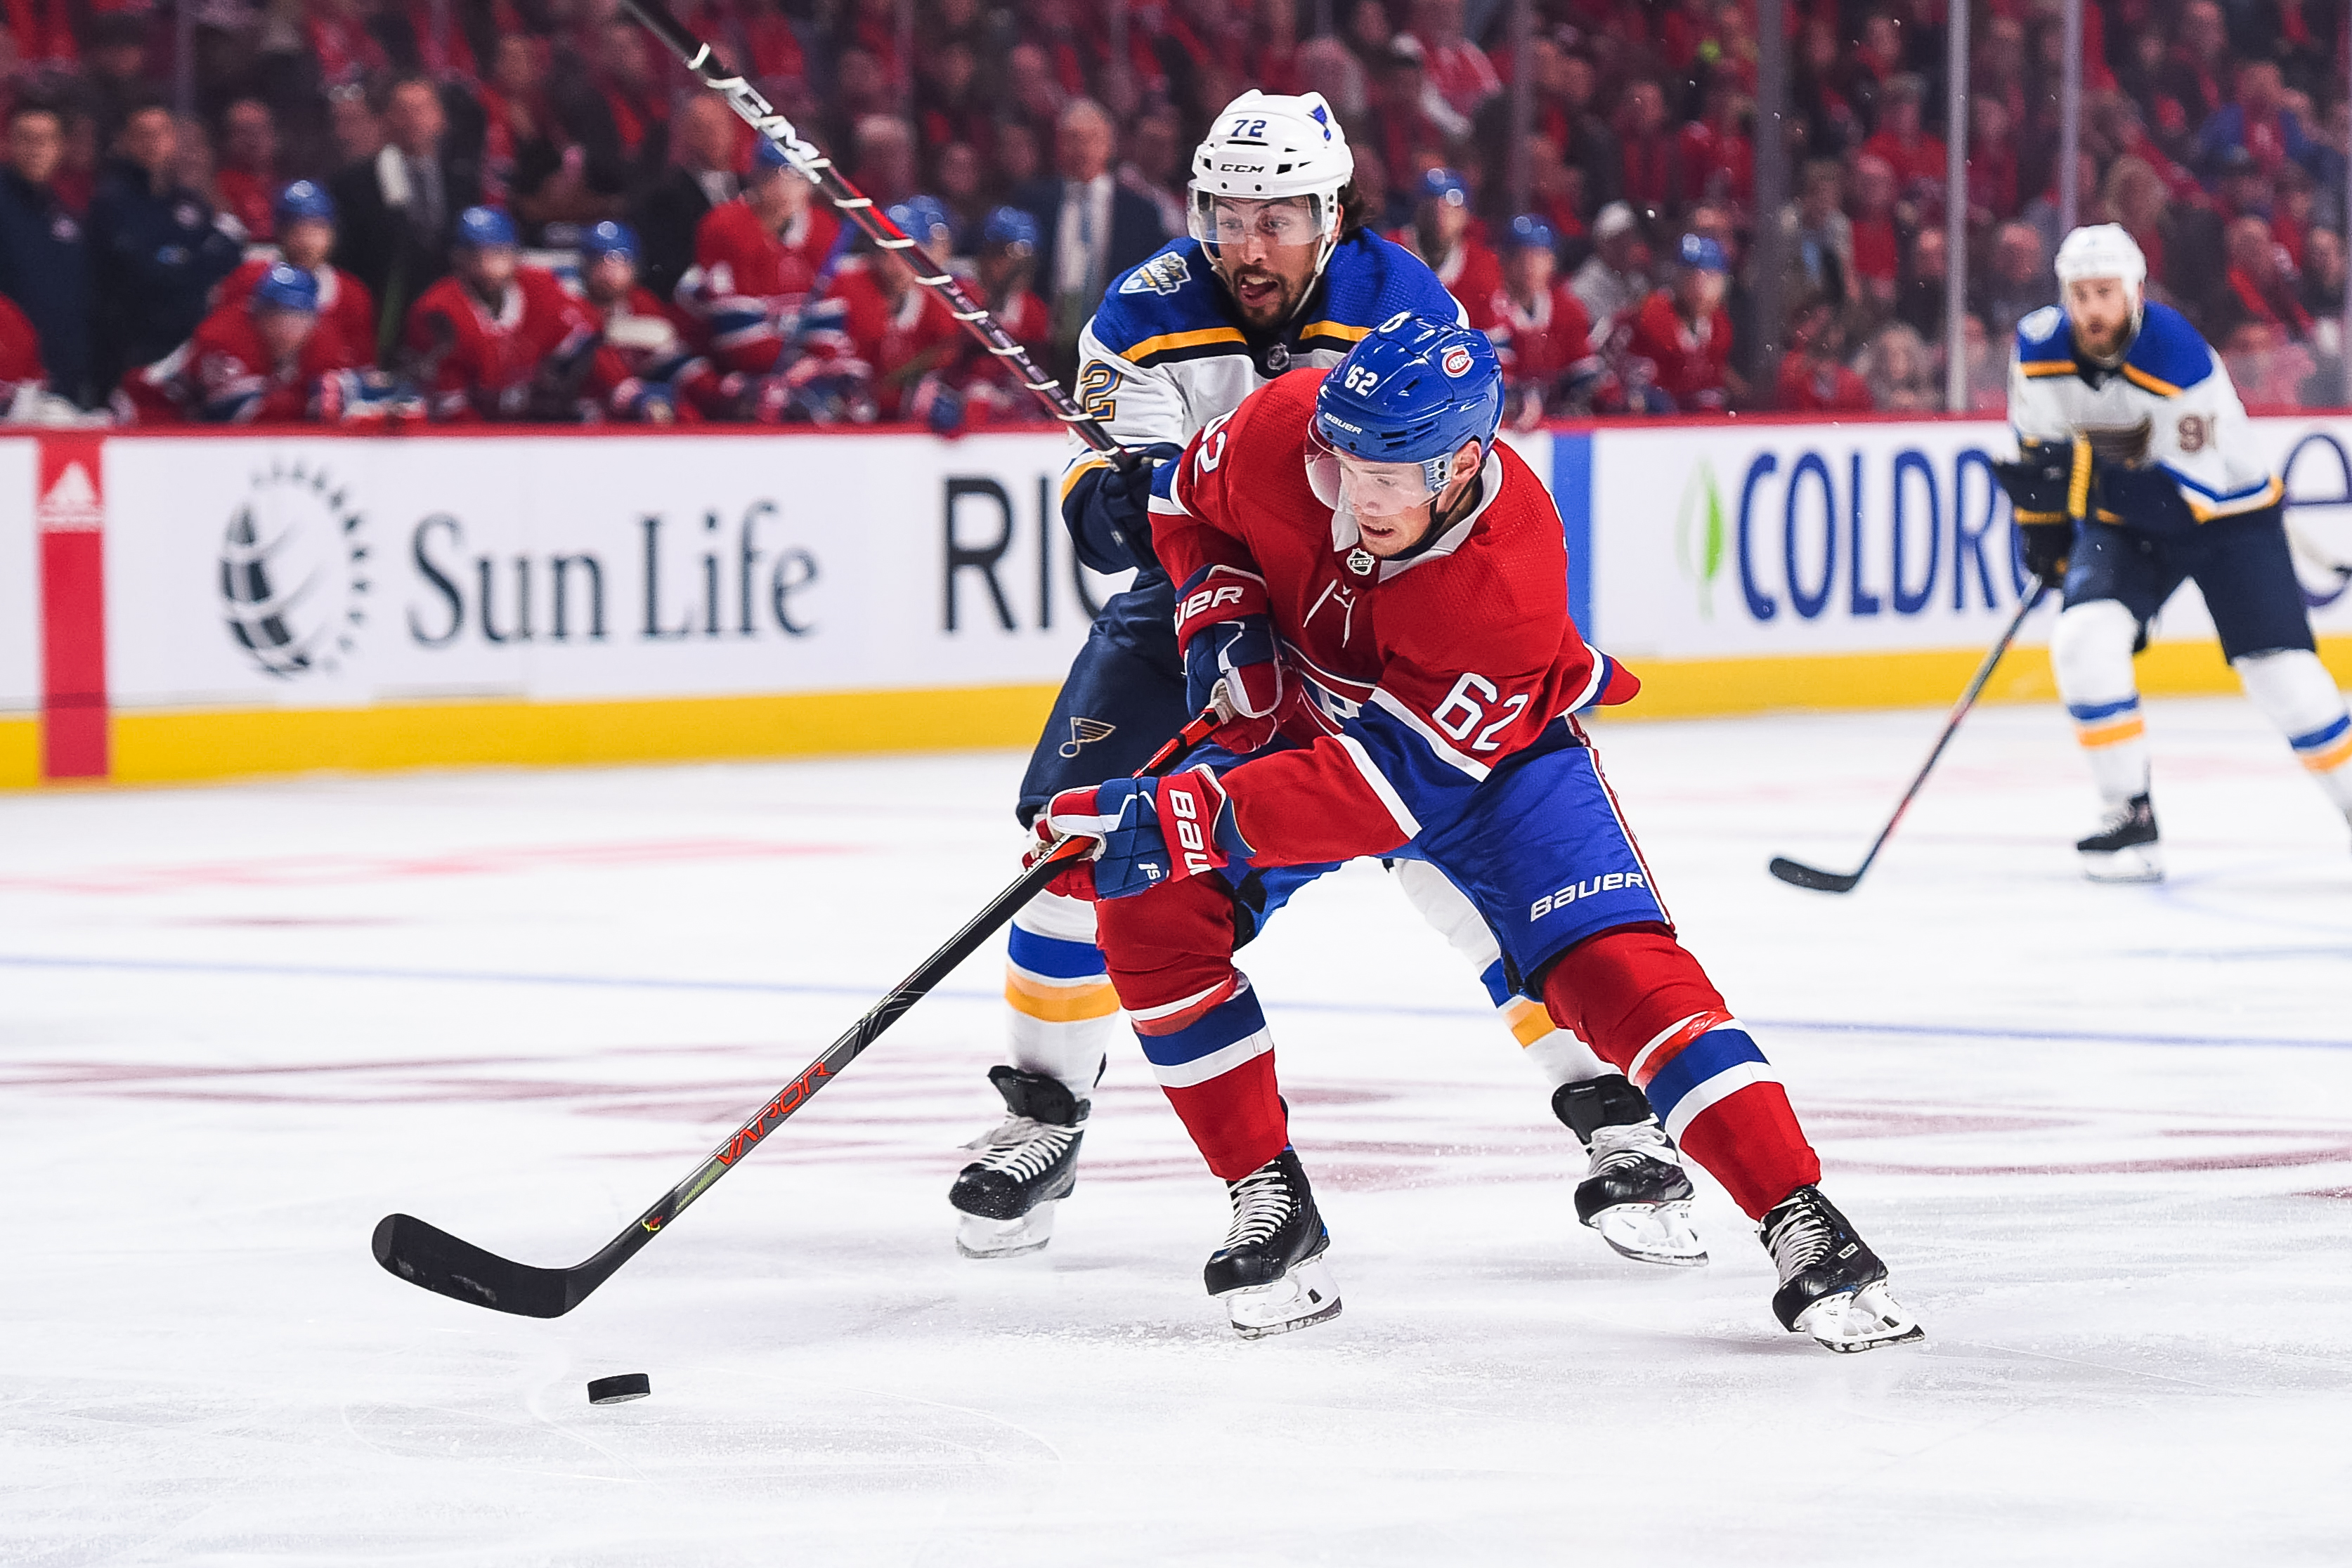 NHL: OCT 12 Blues at Canadiens